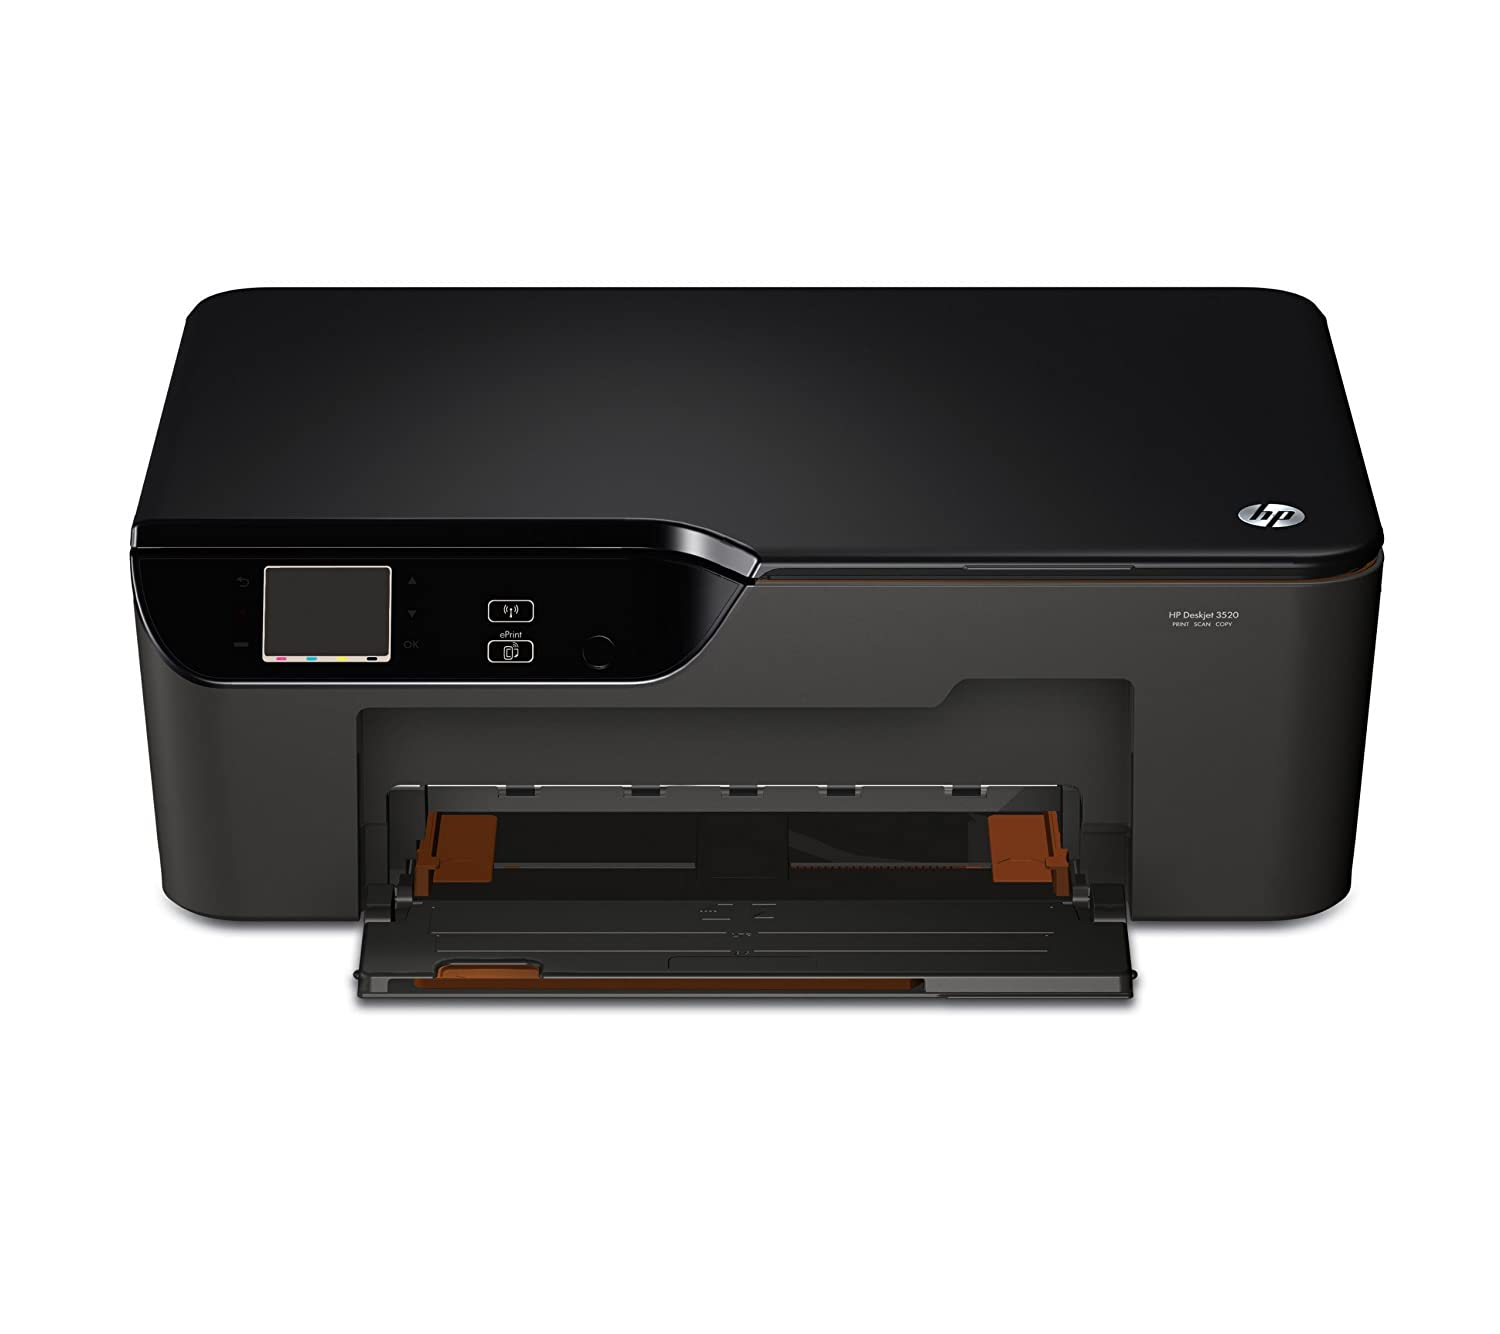 Download HP Pro 3330 drivers for Windows 7/XP/8/Vista ...